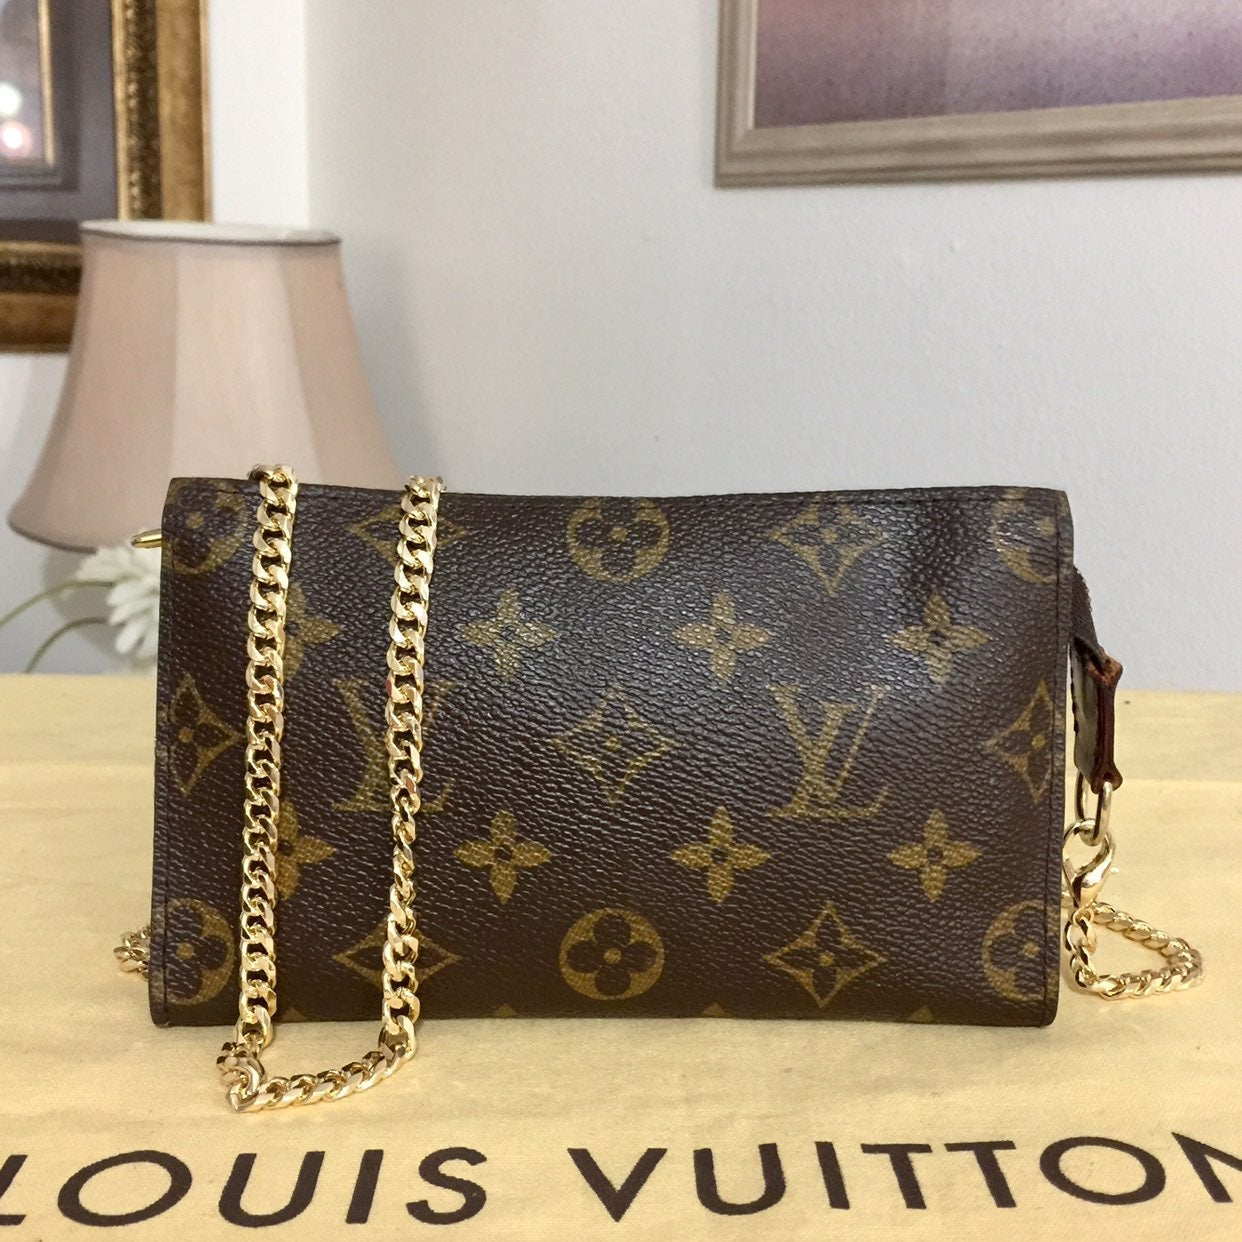 Louis Vuitton Bucket Pouch/Crossbody Bag